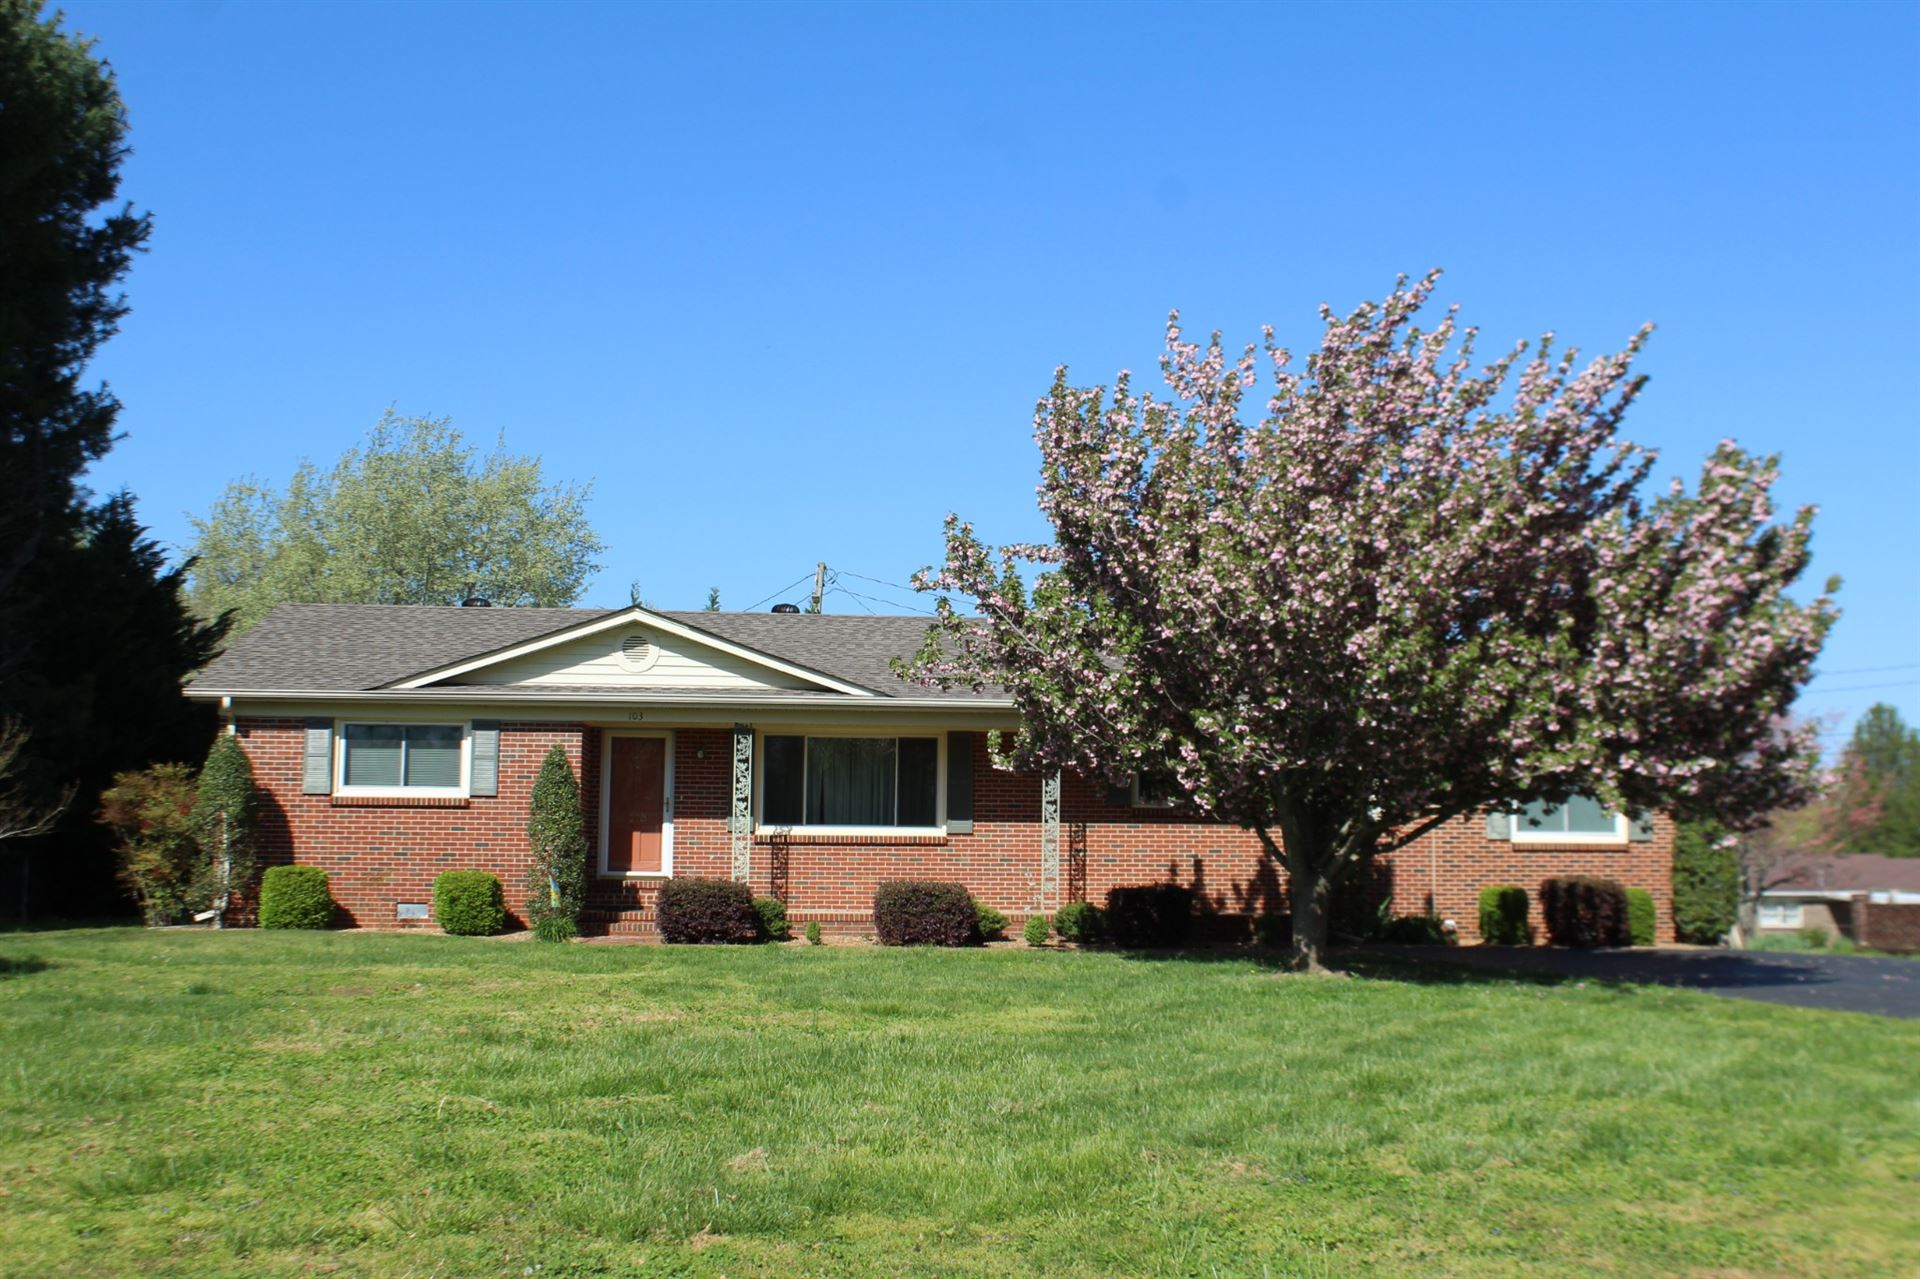 103 Caney Ln, McMinnville, TN 37110 - MLS#: 2253198